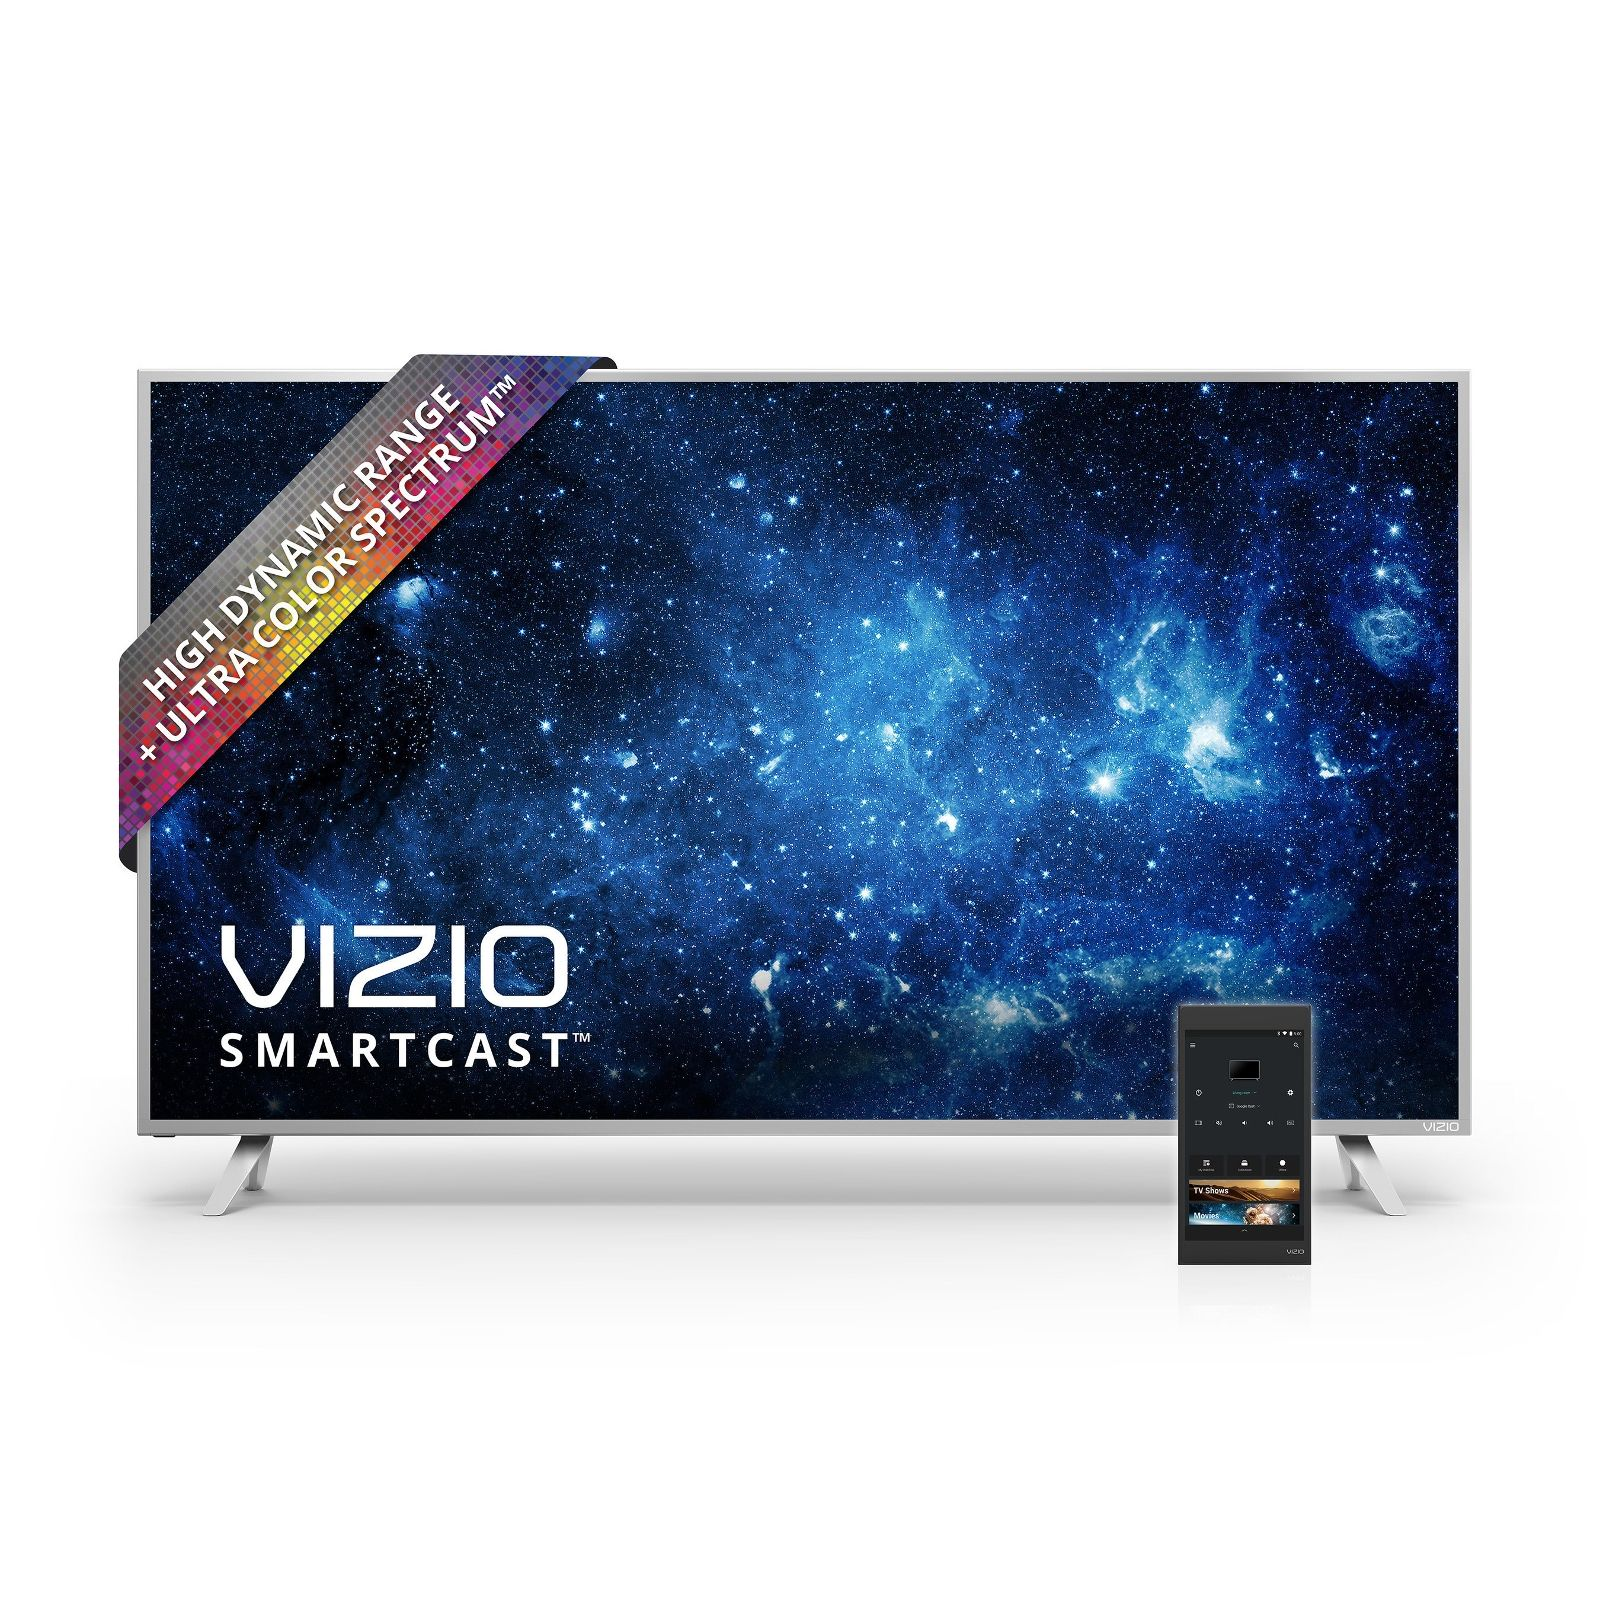 How to Disconnect a Vizio Smart TV From Wi-Fi